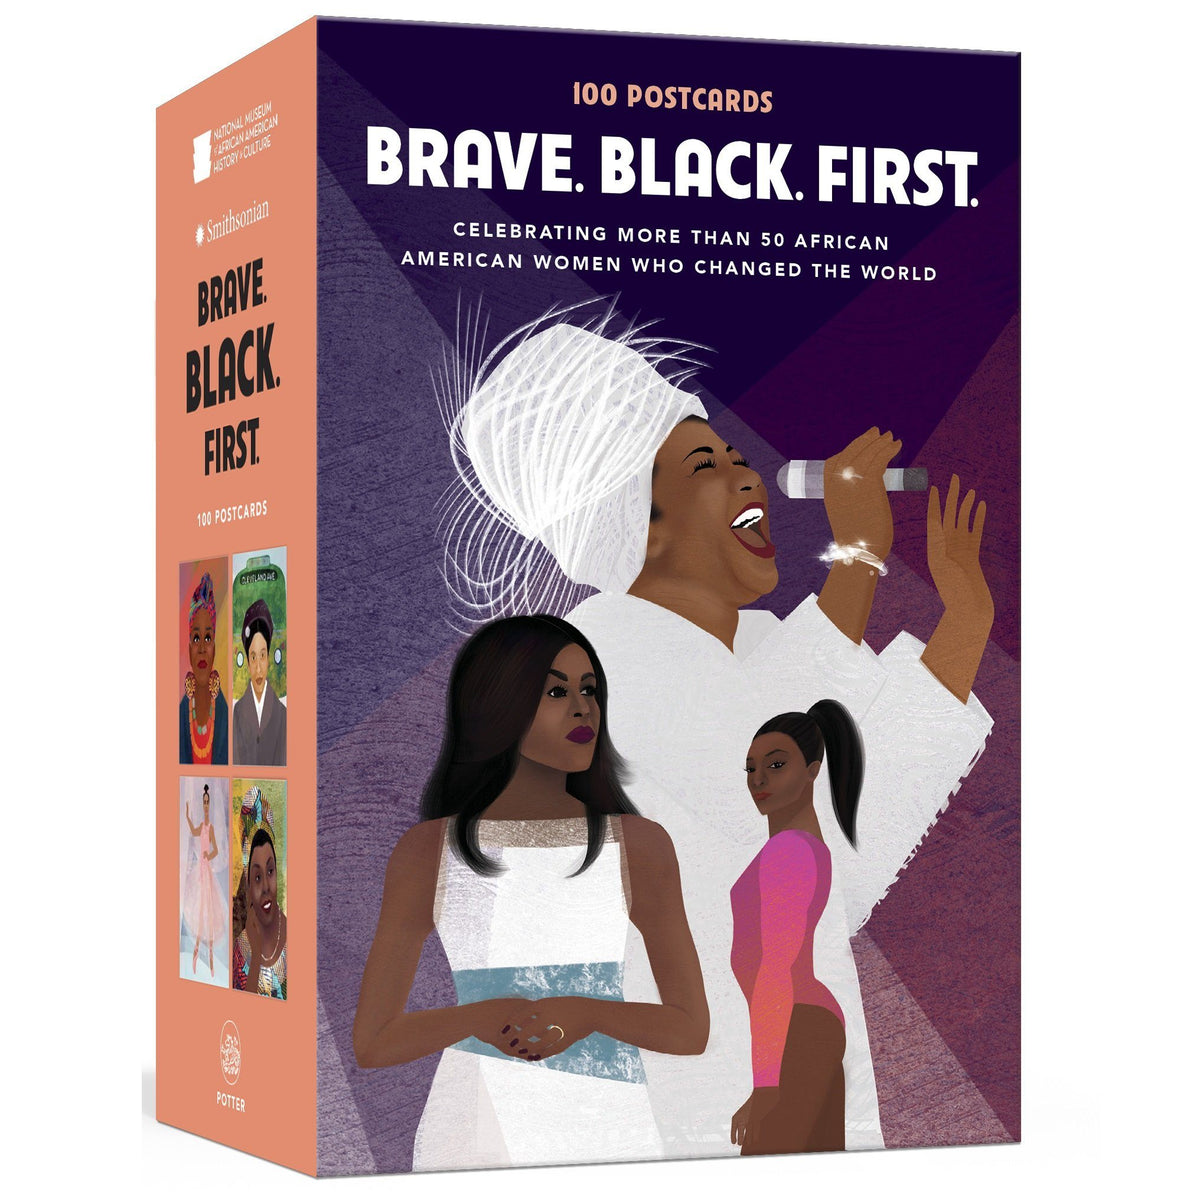 Brave. Black. First. - 100 Postcards Celebrating African American Women Who Changed the World